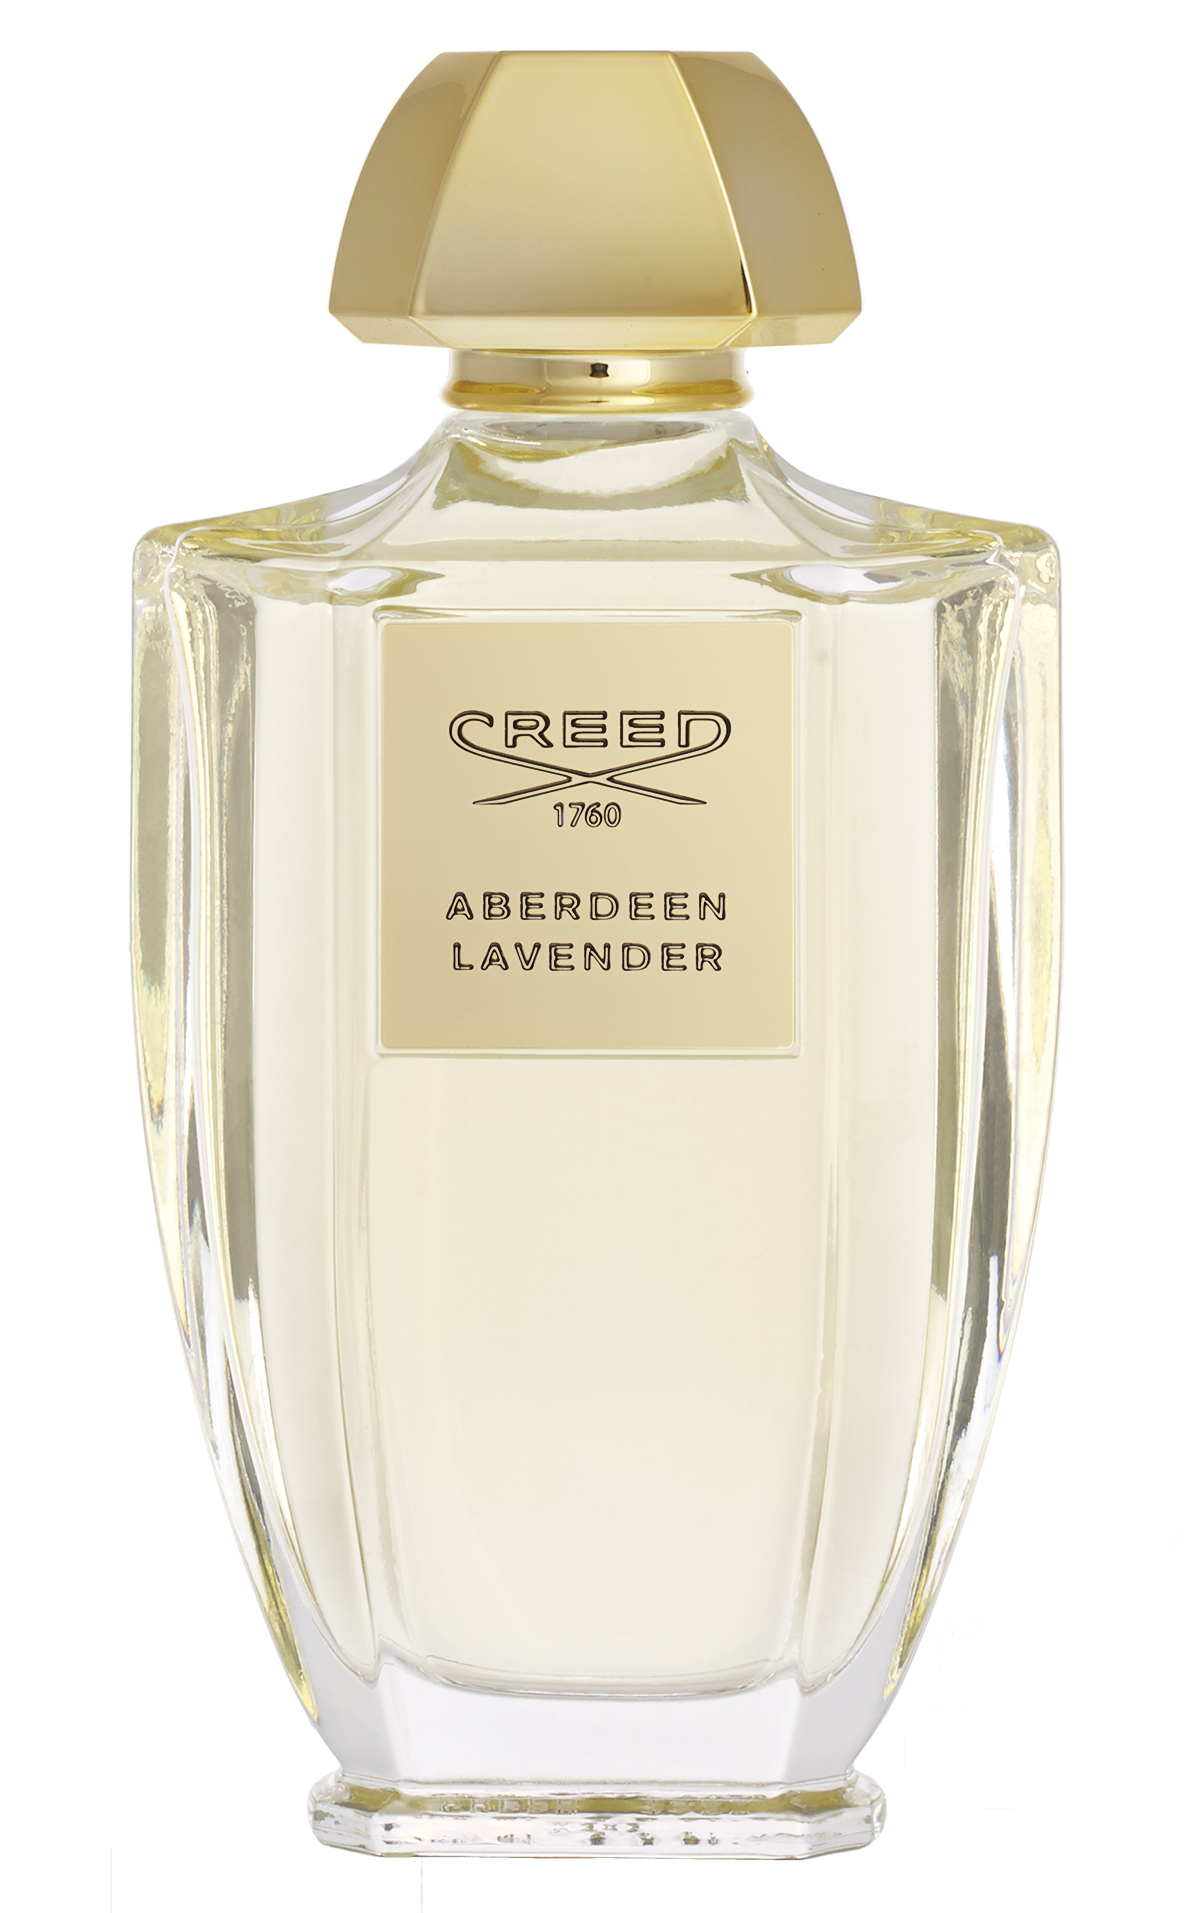 Creed Aberdeen Lavender perfume, £190, creedfragrances.co.uk